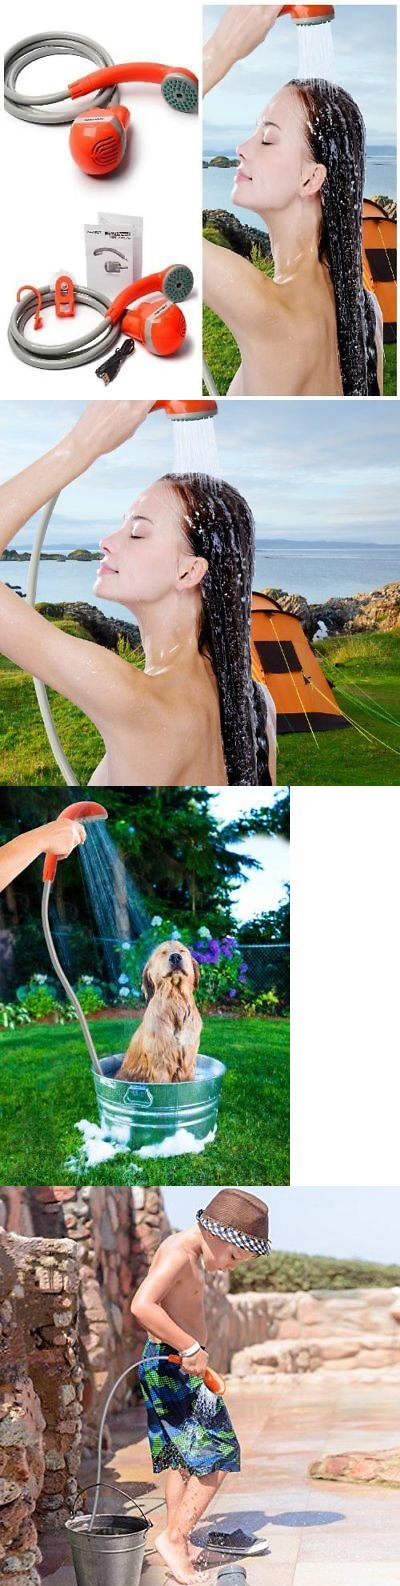 Portable Showers and Accessories 181396: Outdoor Camping Portable Shower Head Compact Handheld Rechargeable Battery Power -> BUY IT NOW ONLY: $56.32 on eBay!